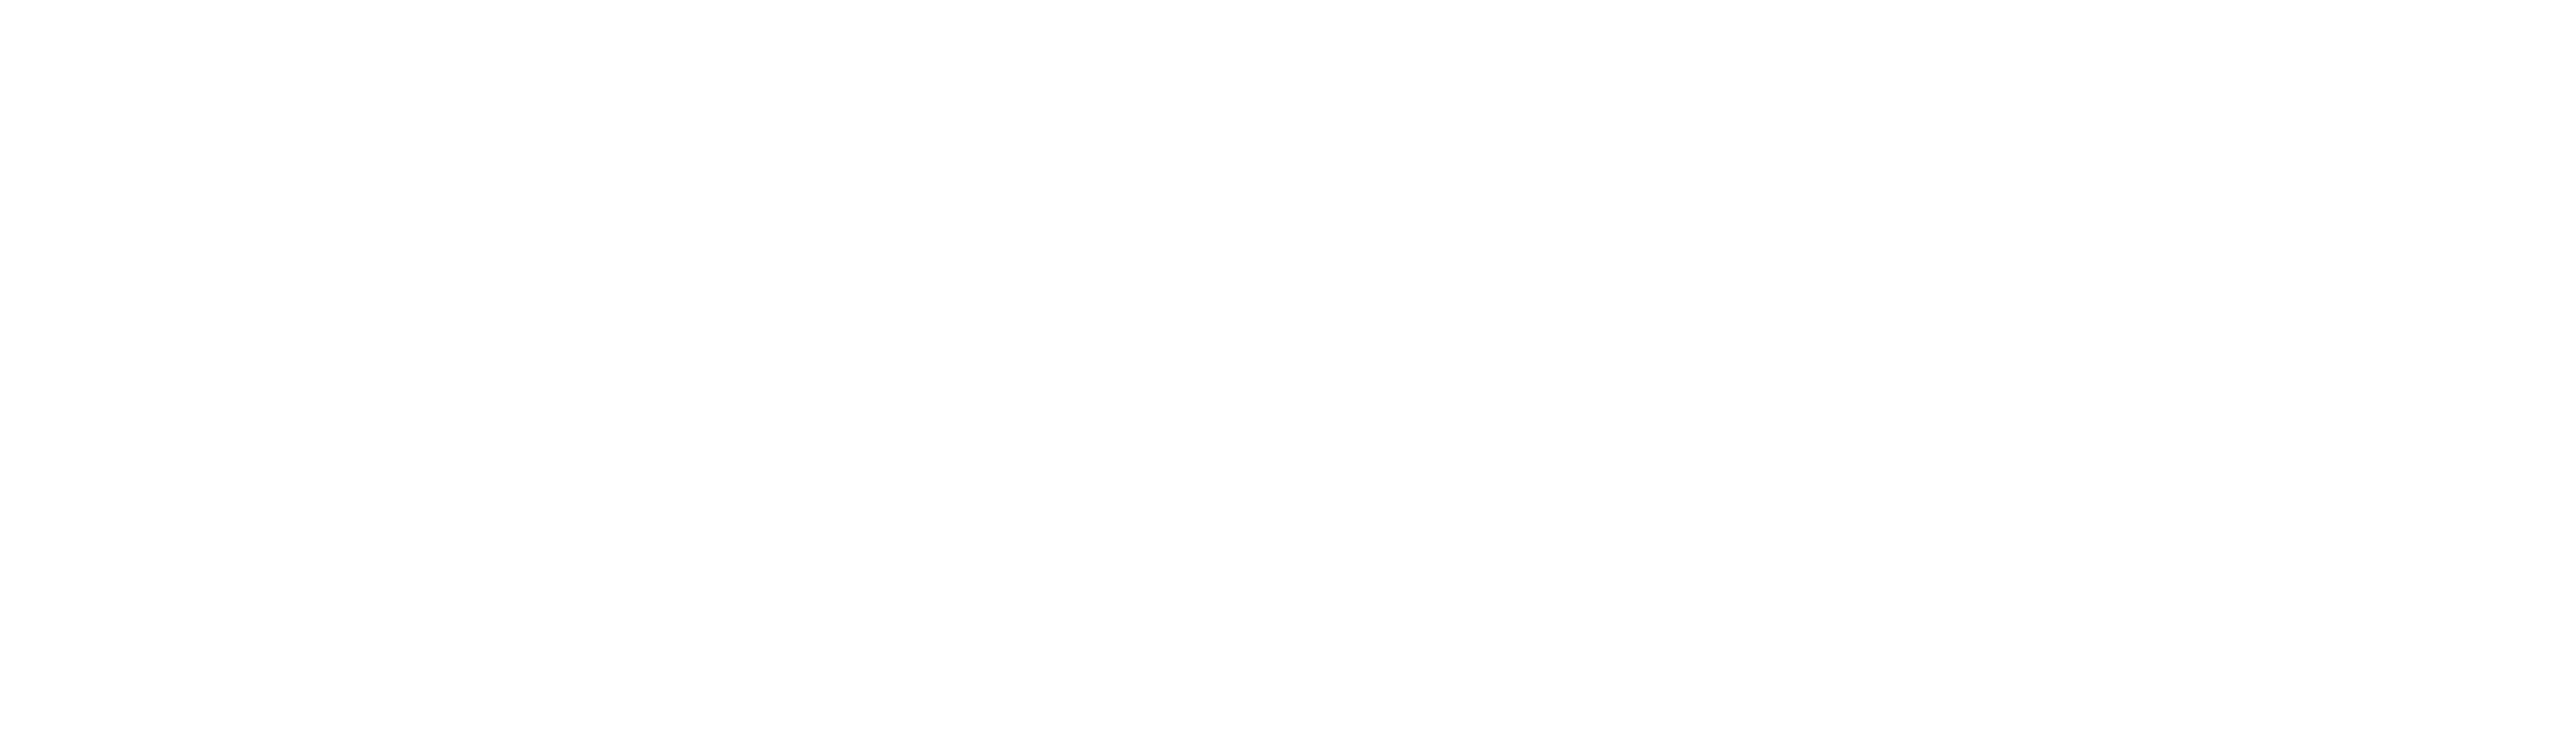 robert chrzaszcz and associates logo